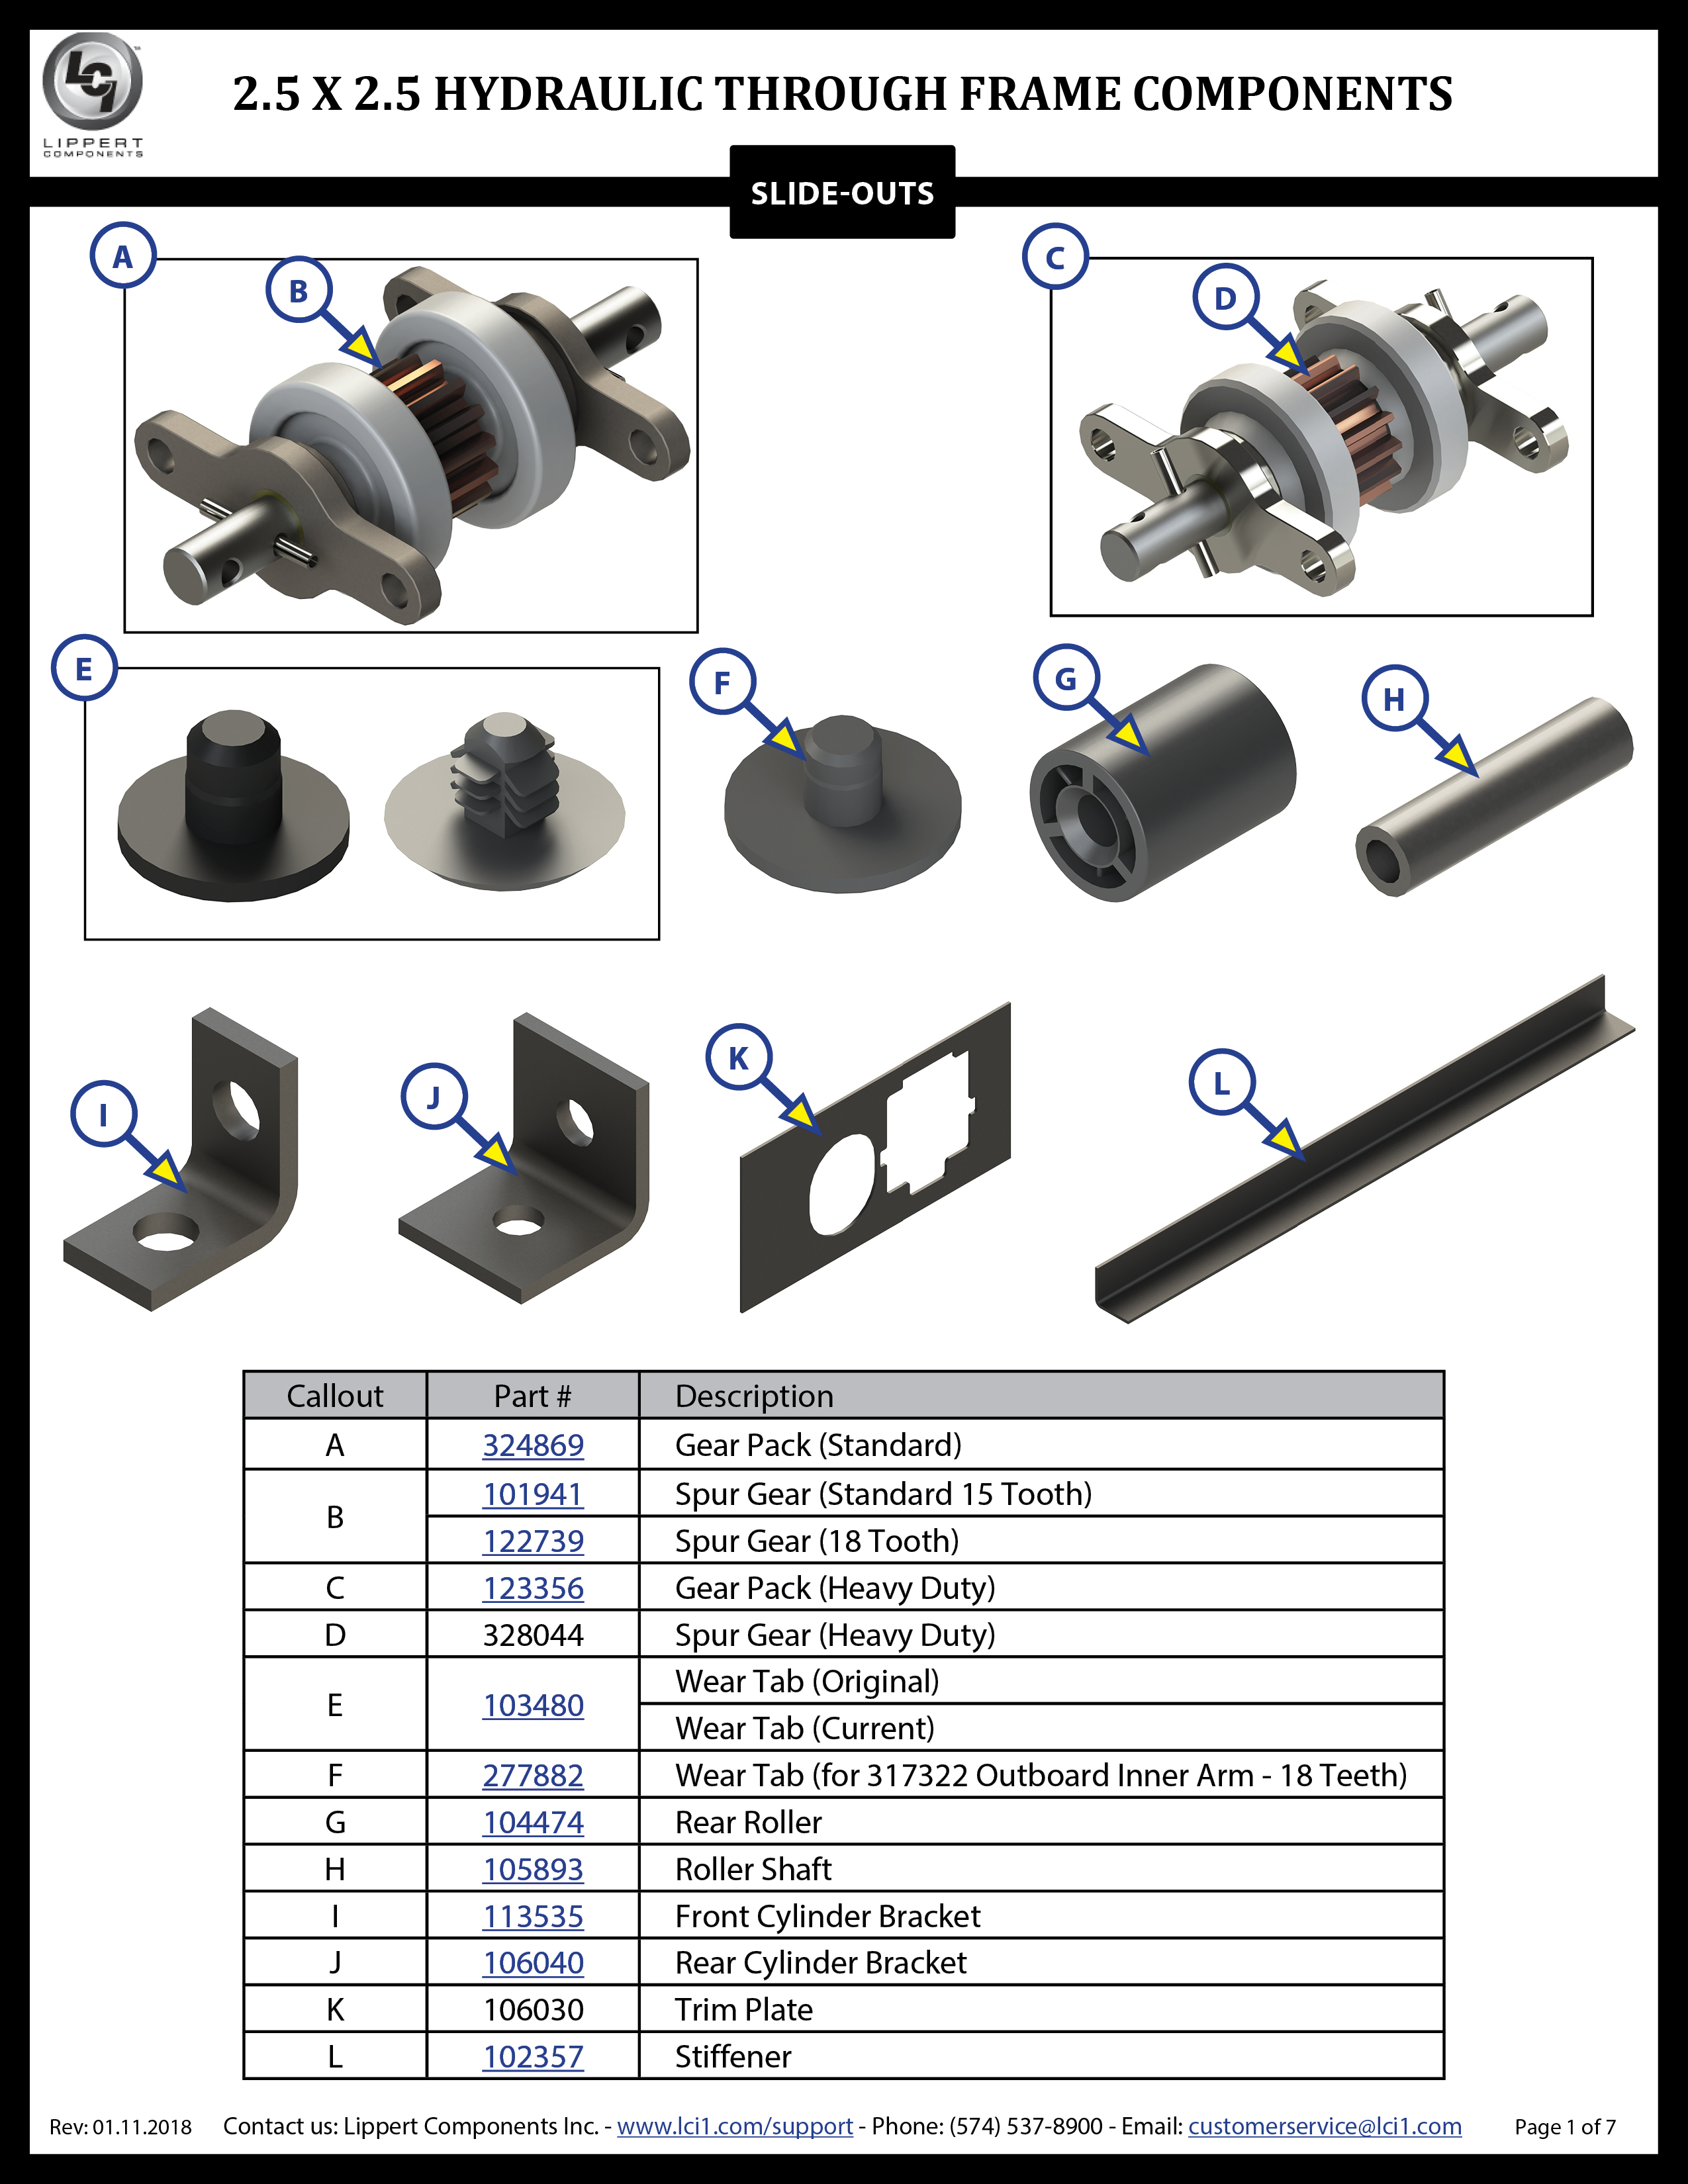 2.5 x 2.5 Hydraulic Through Frame Slide-Out Components Webpage